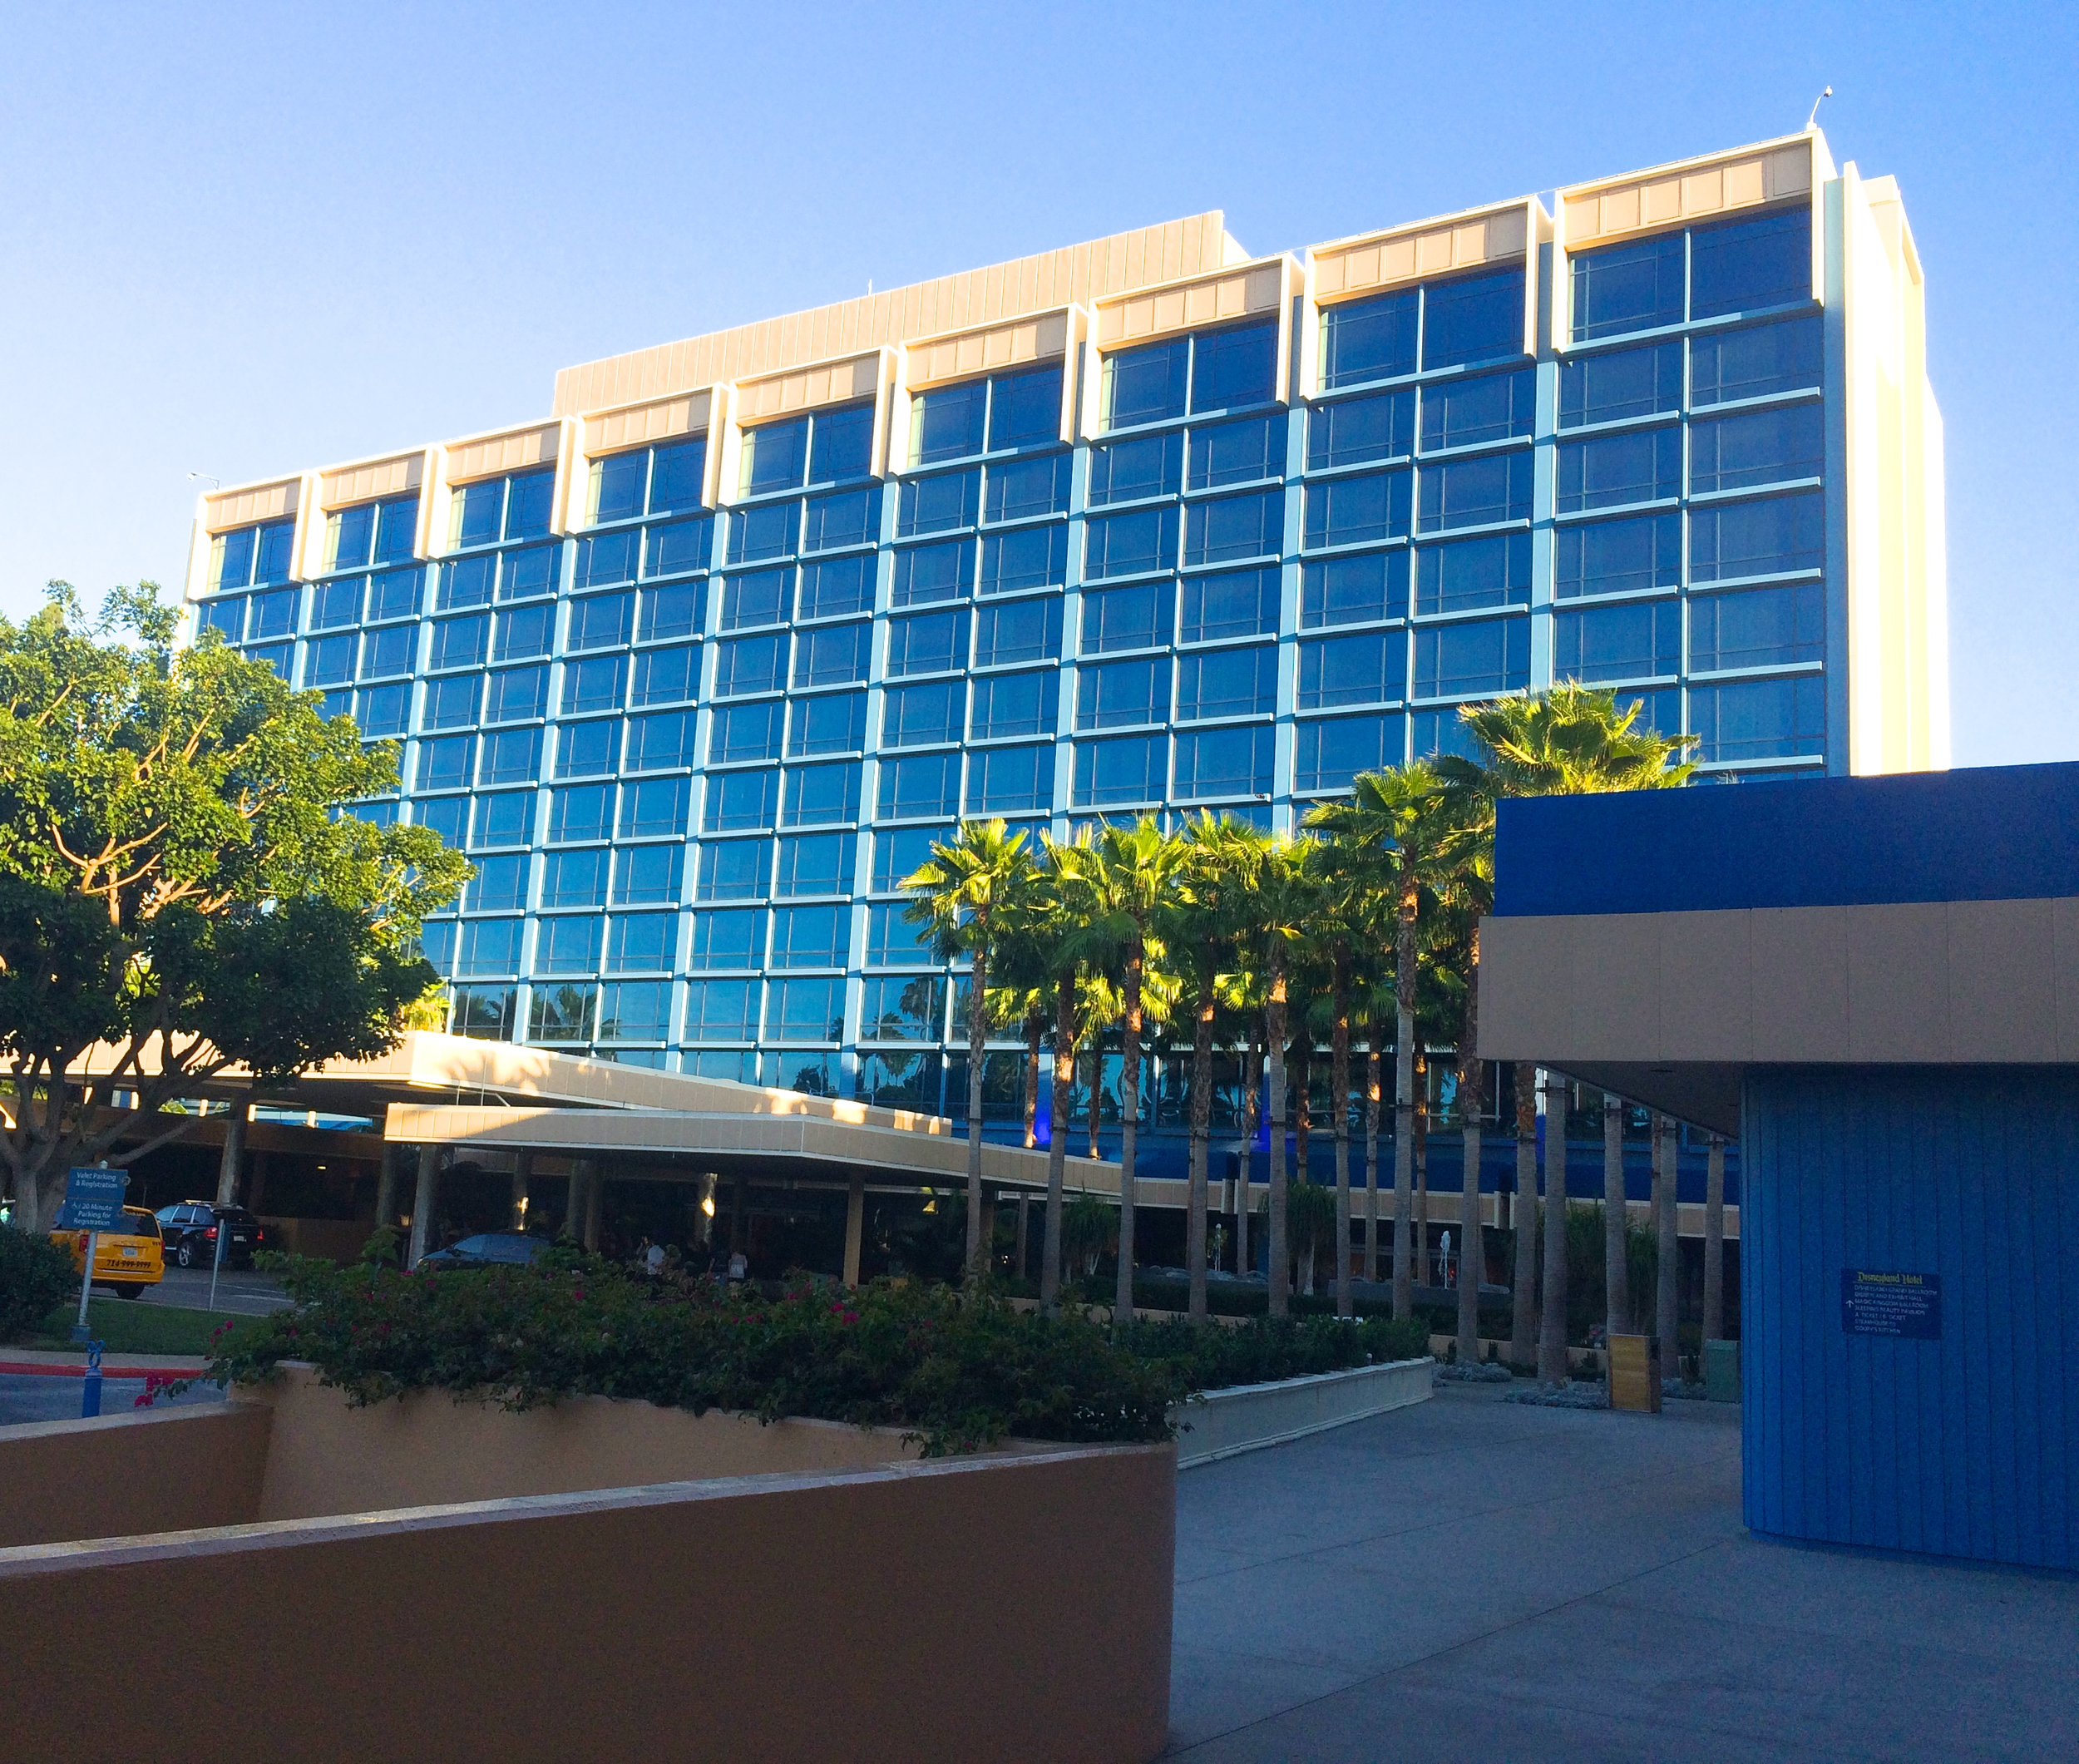 Ahh, the Disneyland Hotel (and on a work night no less!)